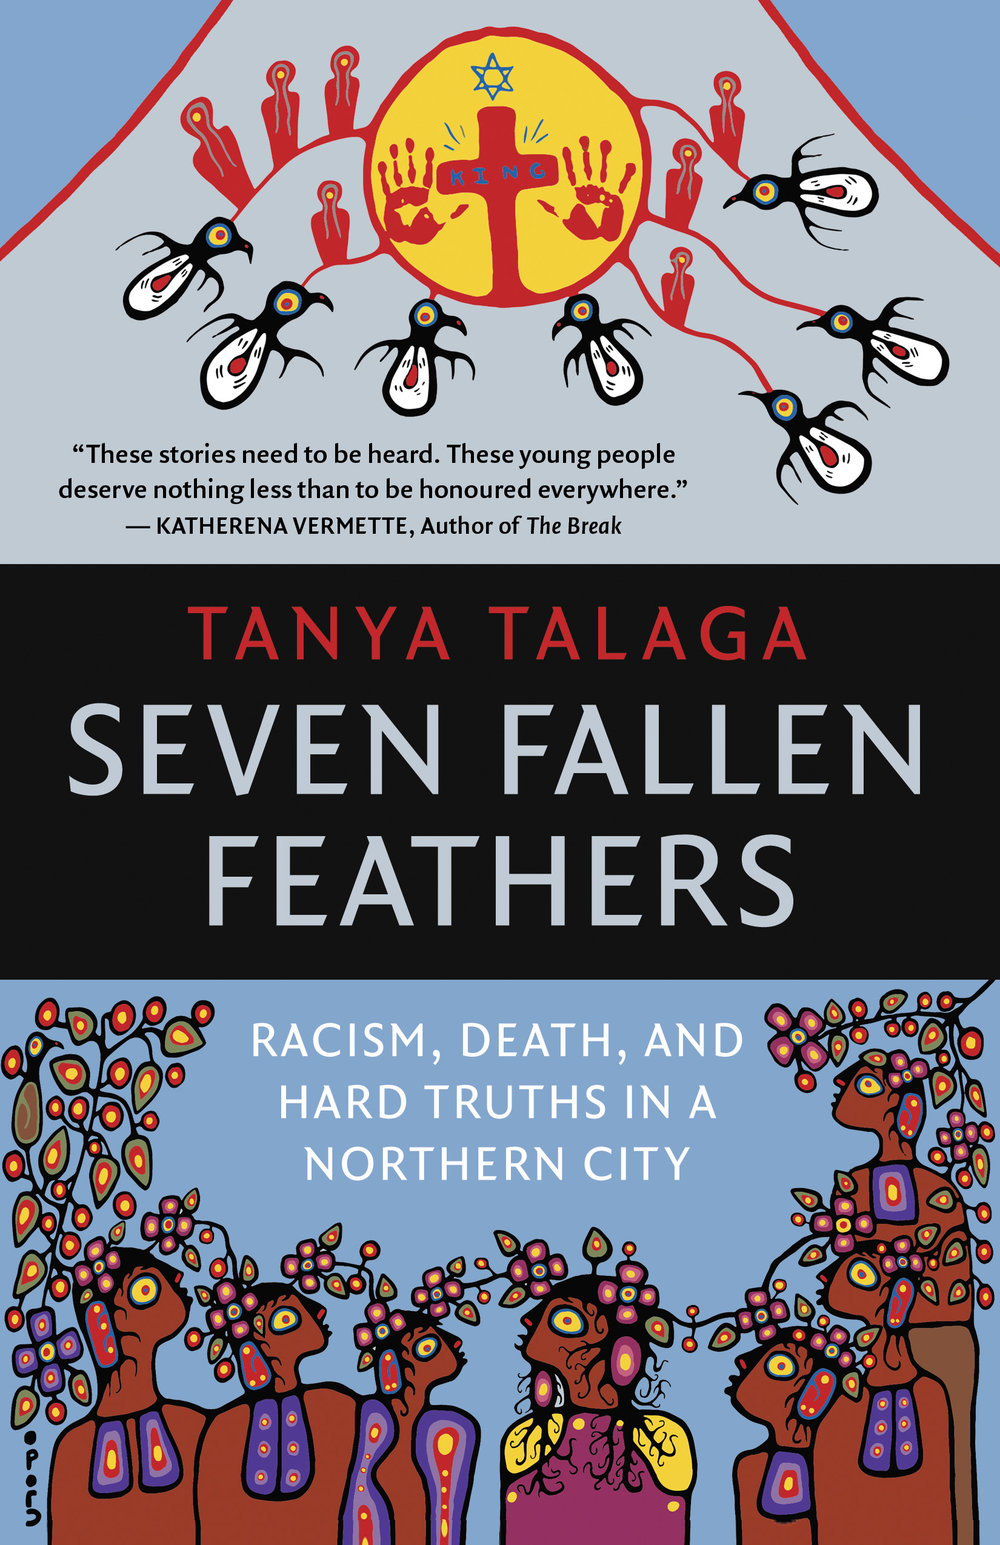 Tanya Talaga. Seven Fallen Feathers: Racism, Death, and Hard Truths in a Northern City. House of Anansi. $22.95, 376 pp., ISBN: 9781487002268